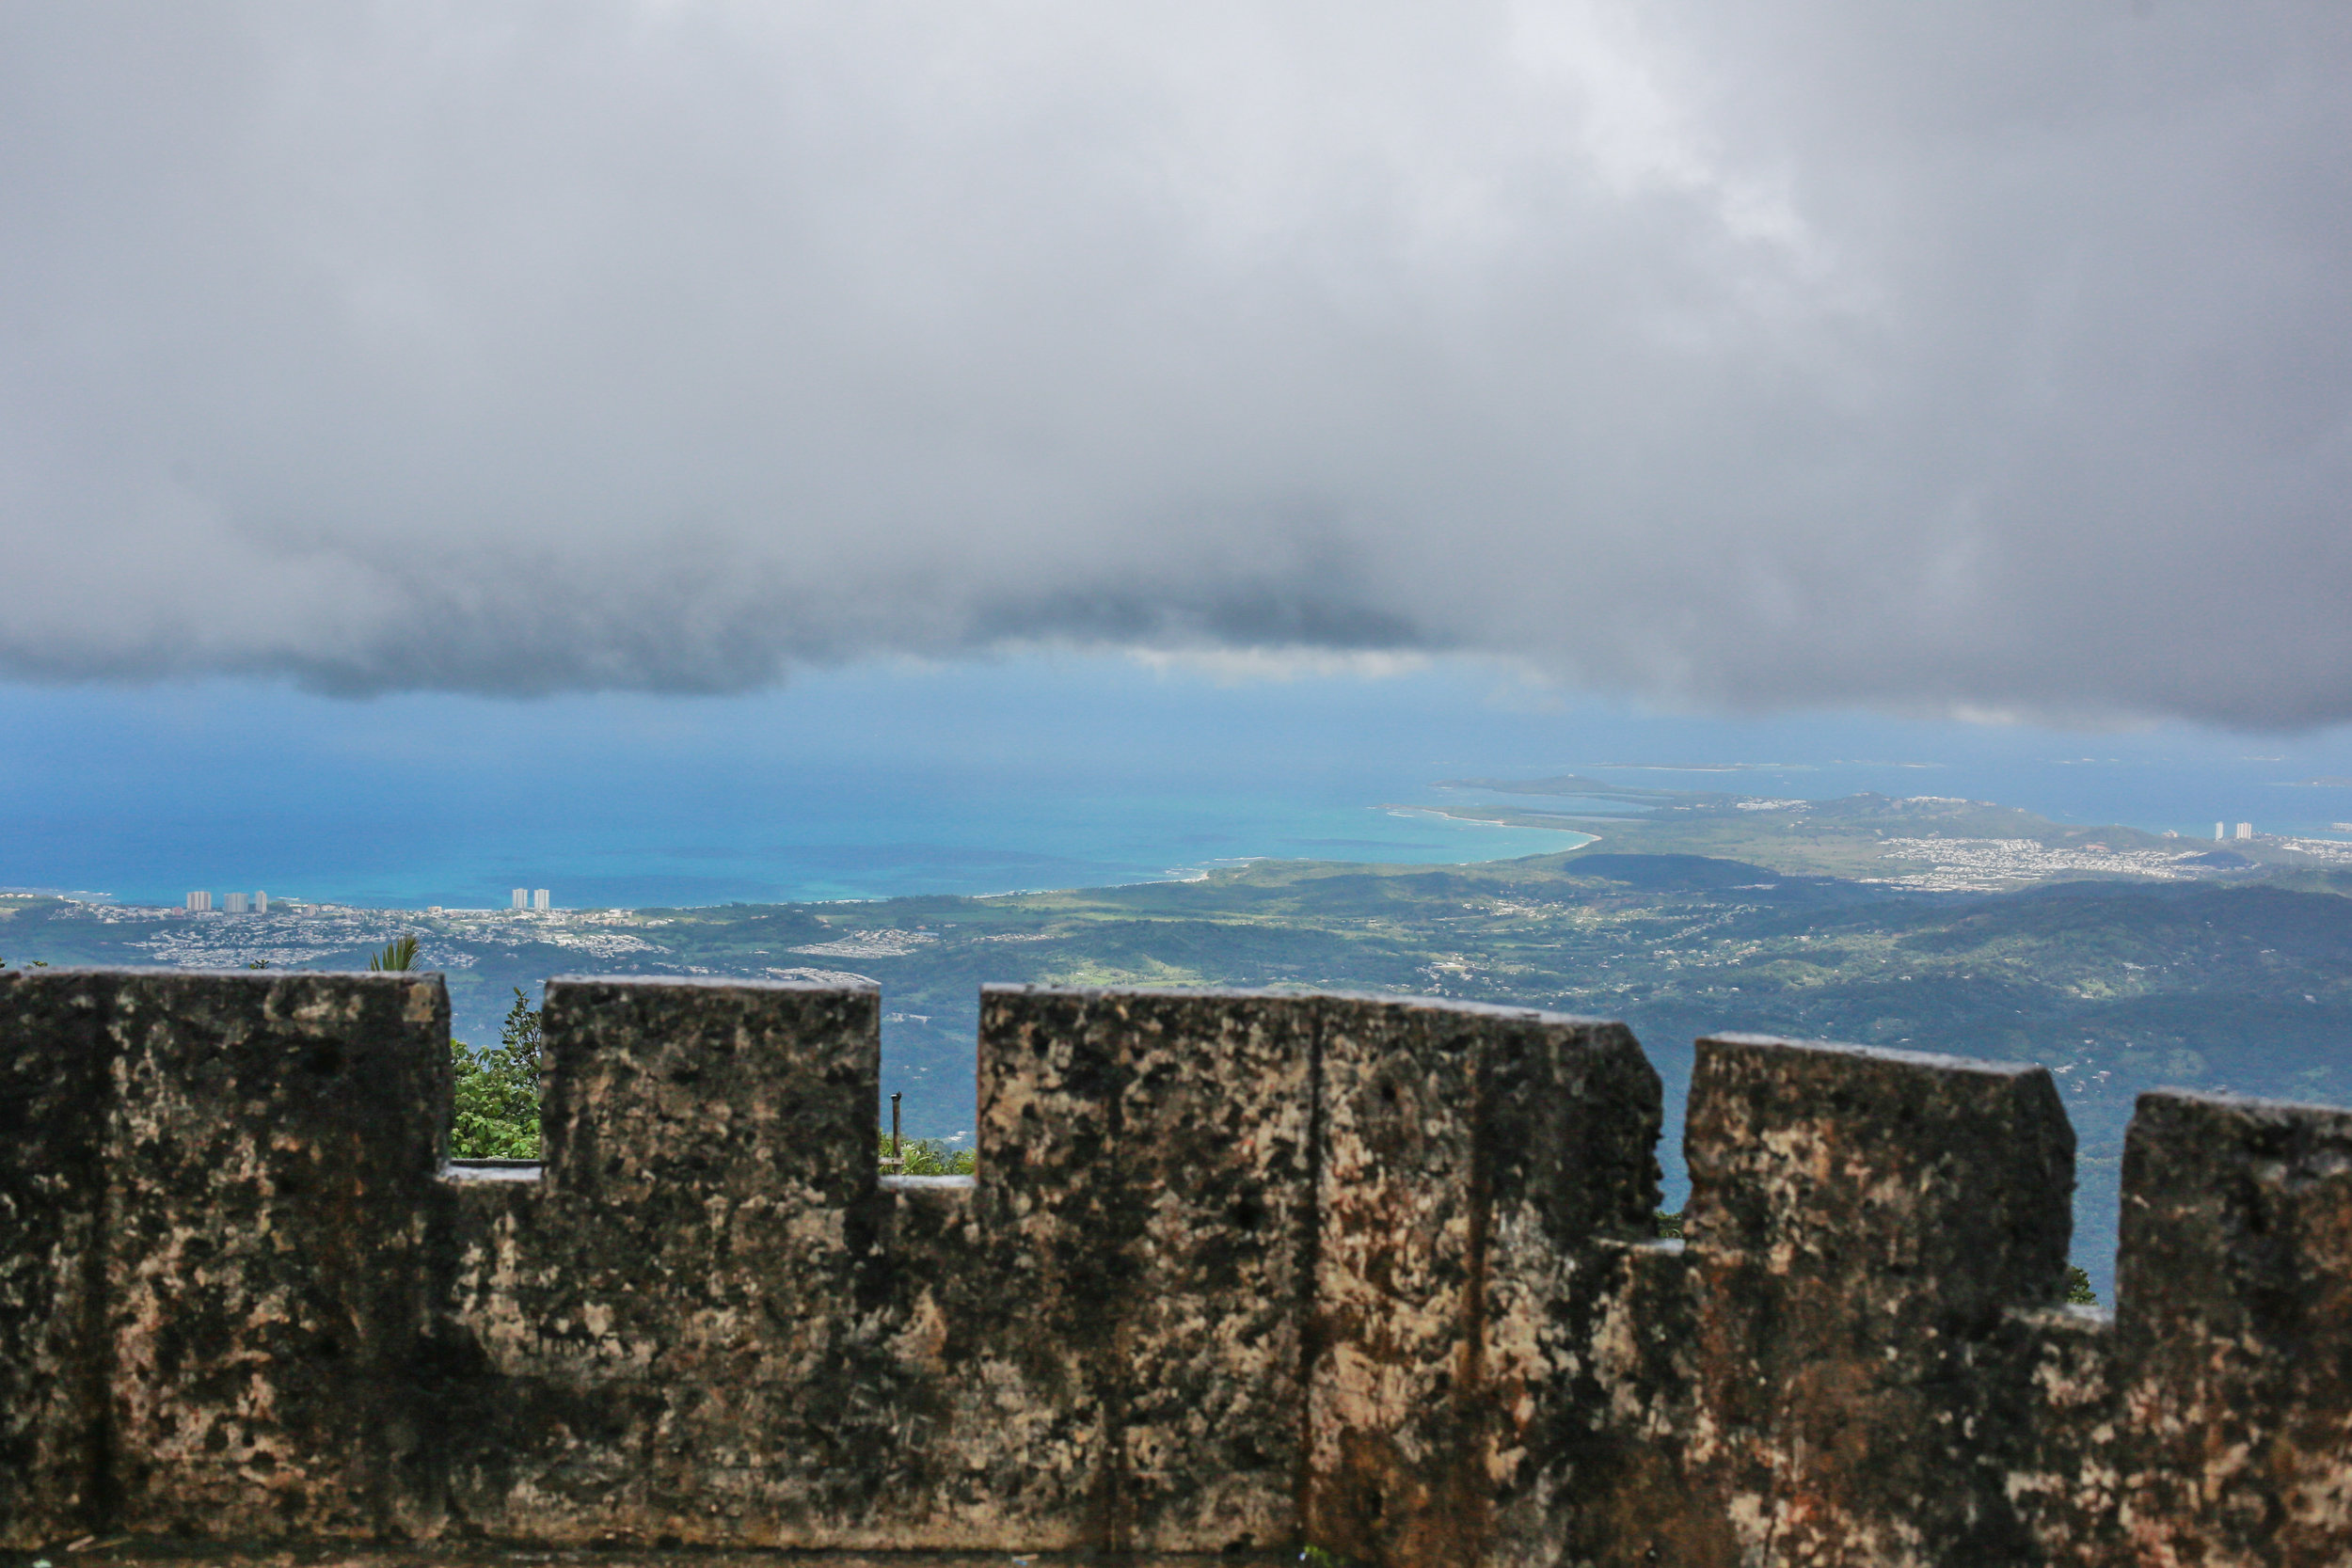 Top of the Old Tower on El Yunque peak, you can see San Juan down on the shores below. Crazy.